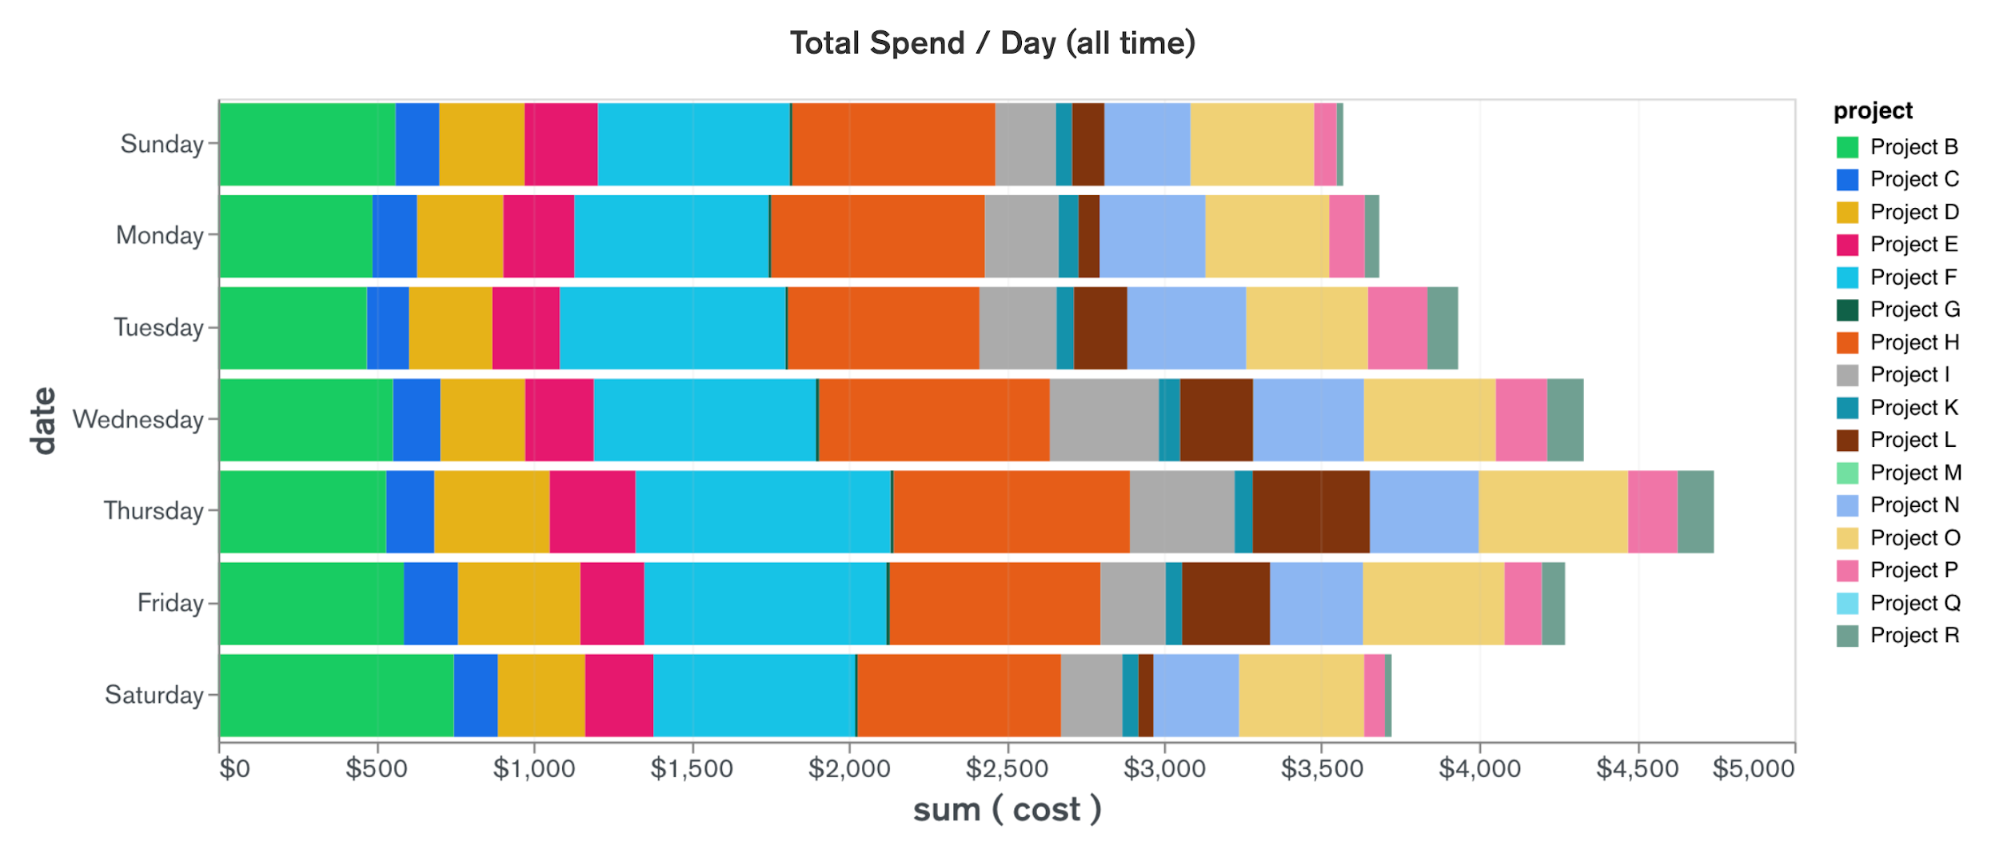 Total Spend by Day for All Time